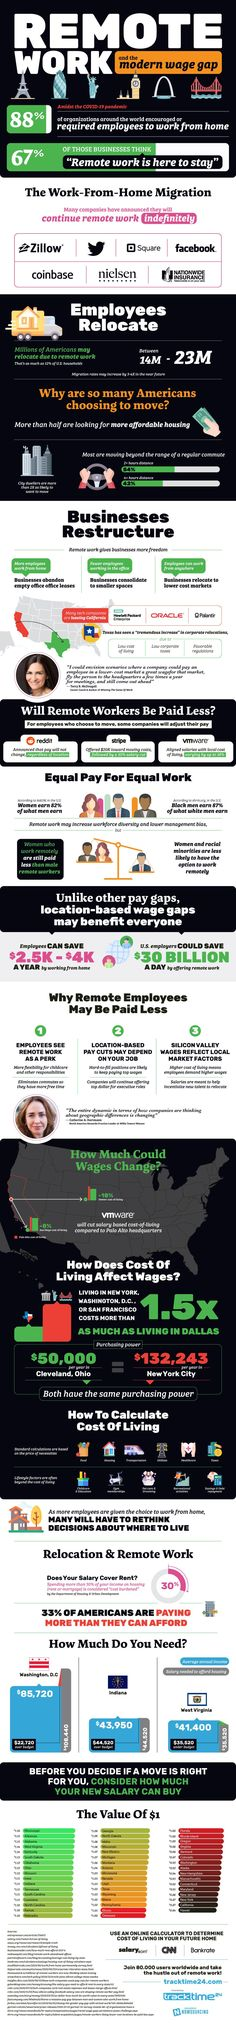 Because part of an employee's salary is meant to address the cost of living, that raises the question: will remote workers be paid less? Find Work, Find A Job, Find Jobs Online, Wage Gap, Small Business Trends, Migrant Worker, Career Choices, Changing Jobs, Remote